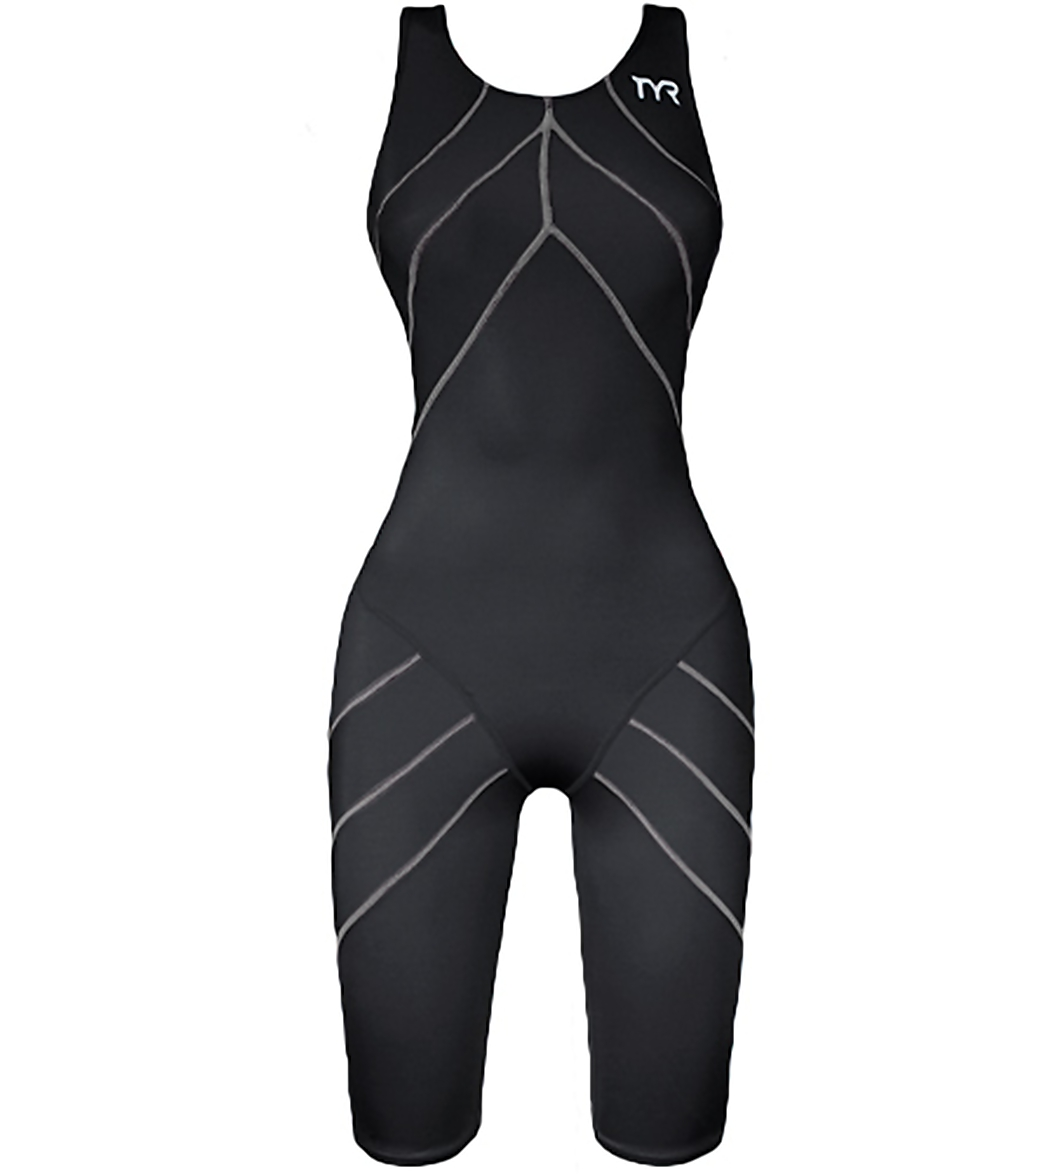 TYR Aquapel Female Short John Aeroback Tech Suit Swimsuit at SwimOutlet.com  - Free Shipping 4b3402370